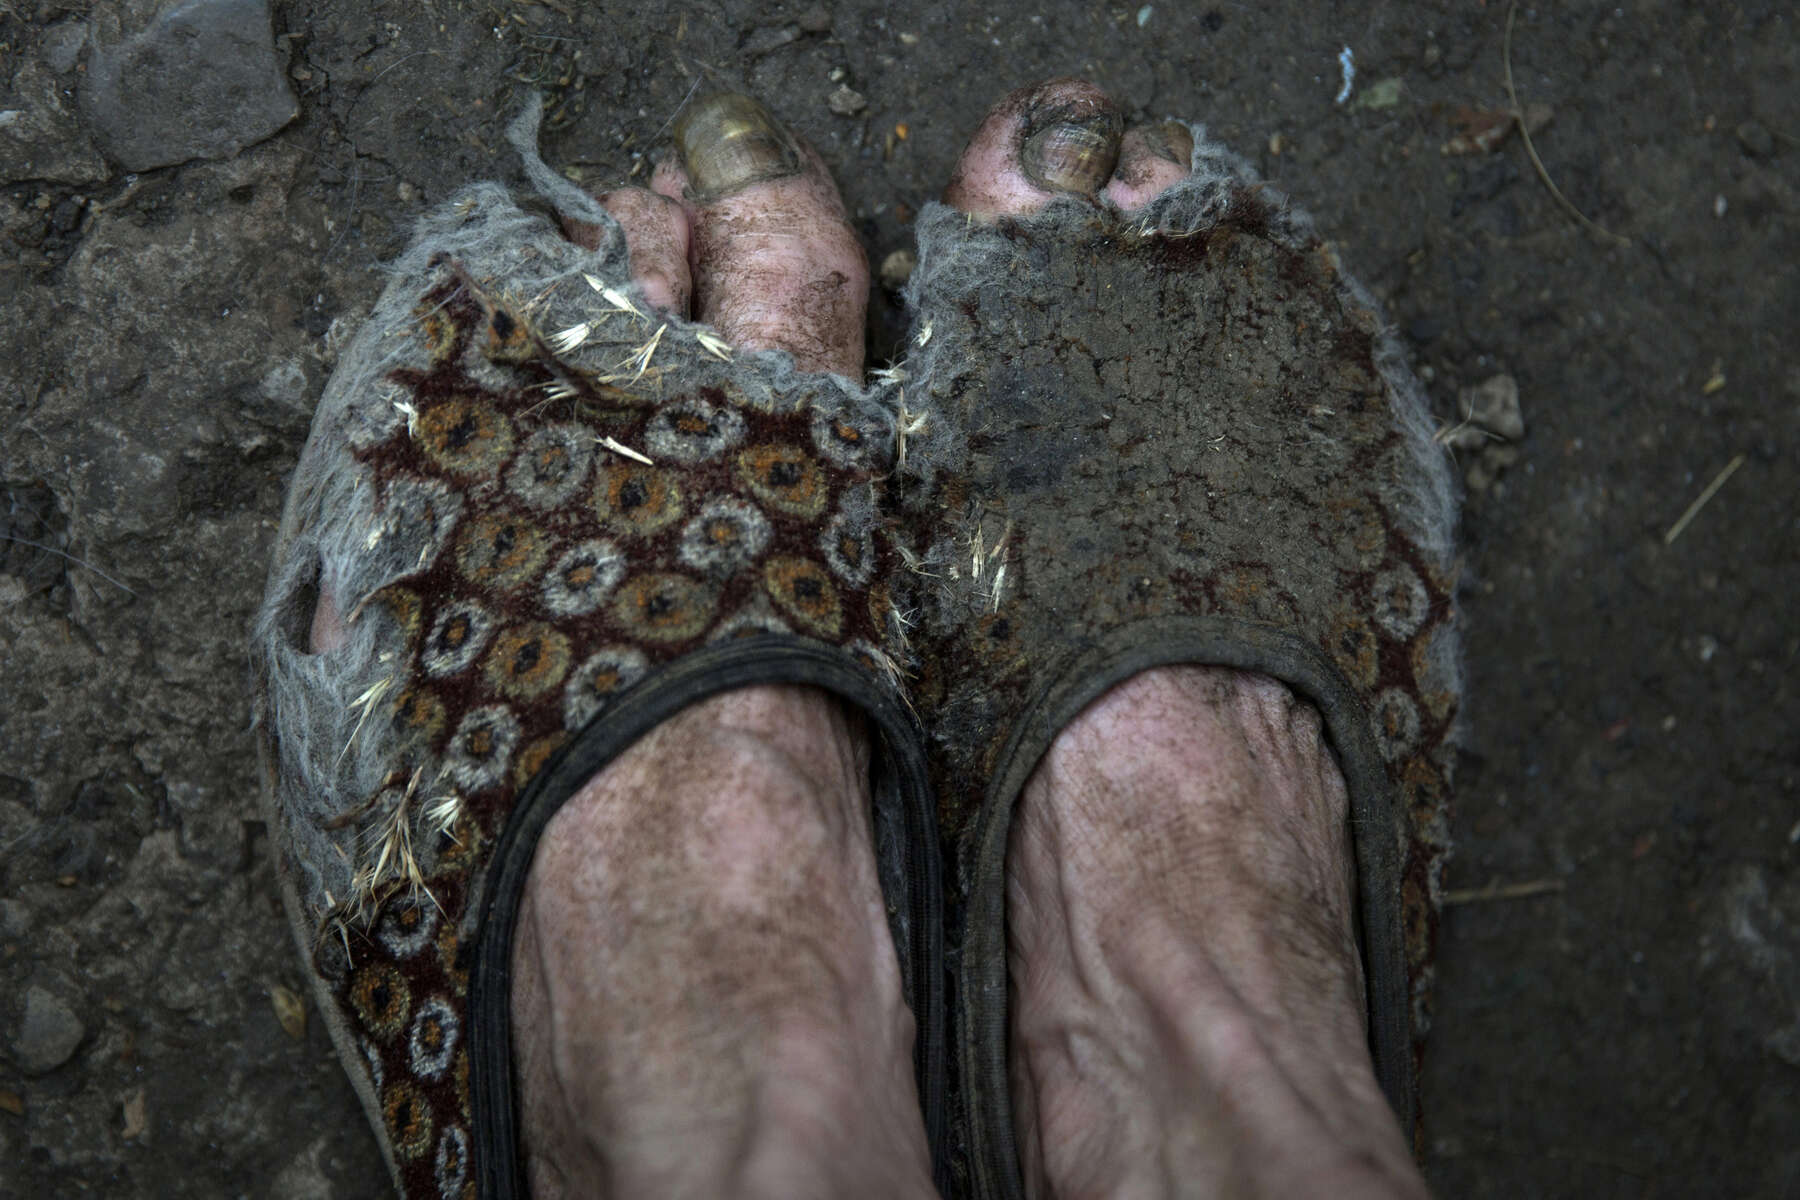 Opytne: Donetsk region: Raisa Petrovna, 80 can't afford new shoes so she wears the same old slippers every day. Raisa Petrovna, 80 and her husband Stanislav Vasilyevich live in a village often caught in the crossfire between Ukrainian and Pro-Russian separatists, too close to the contact line.